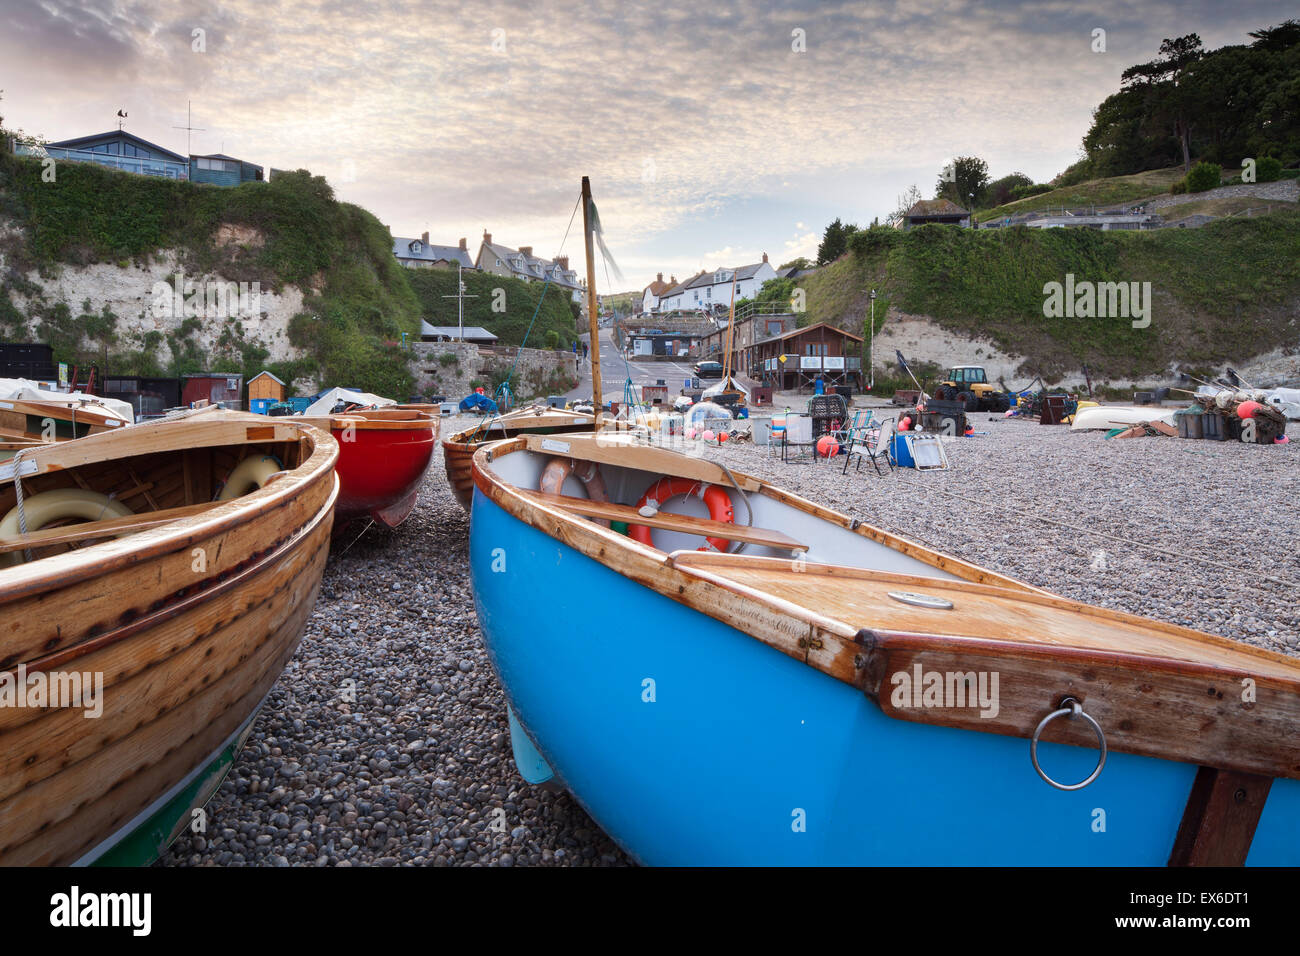 Boats on the beach at Beer, Devon, England, UK Stock Photo